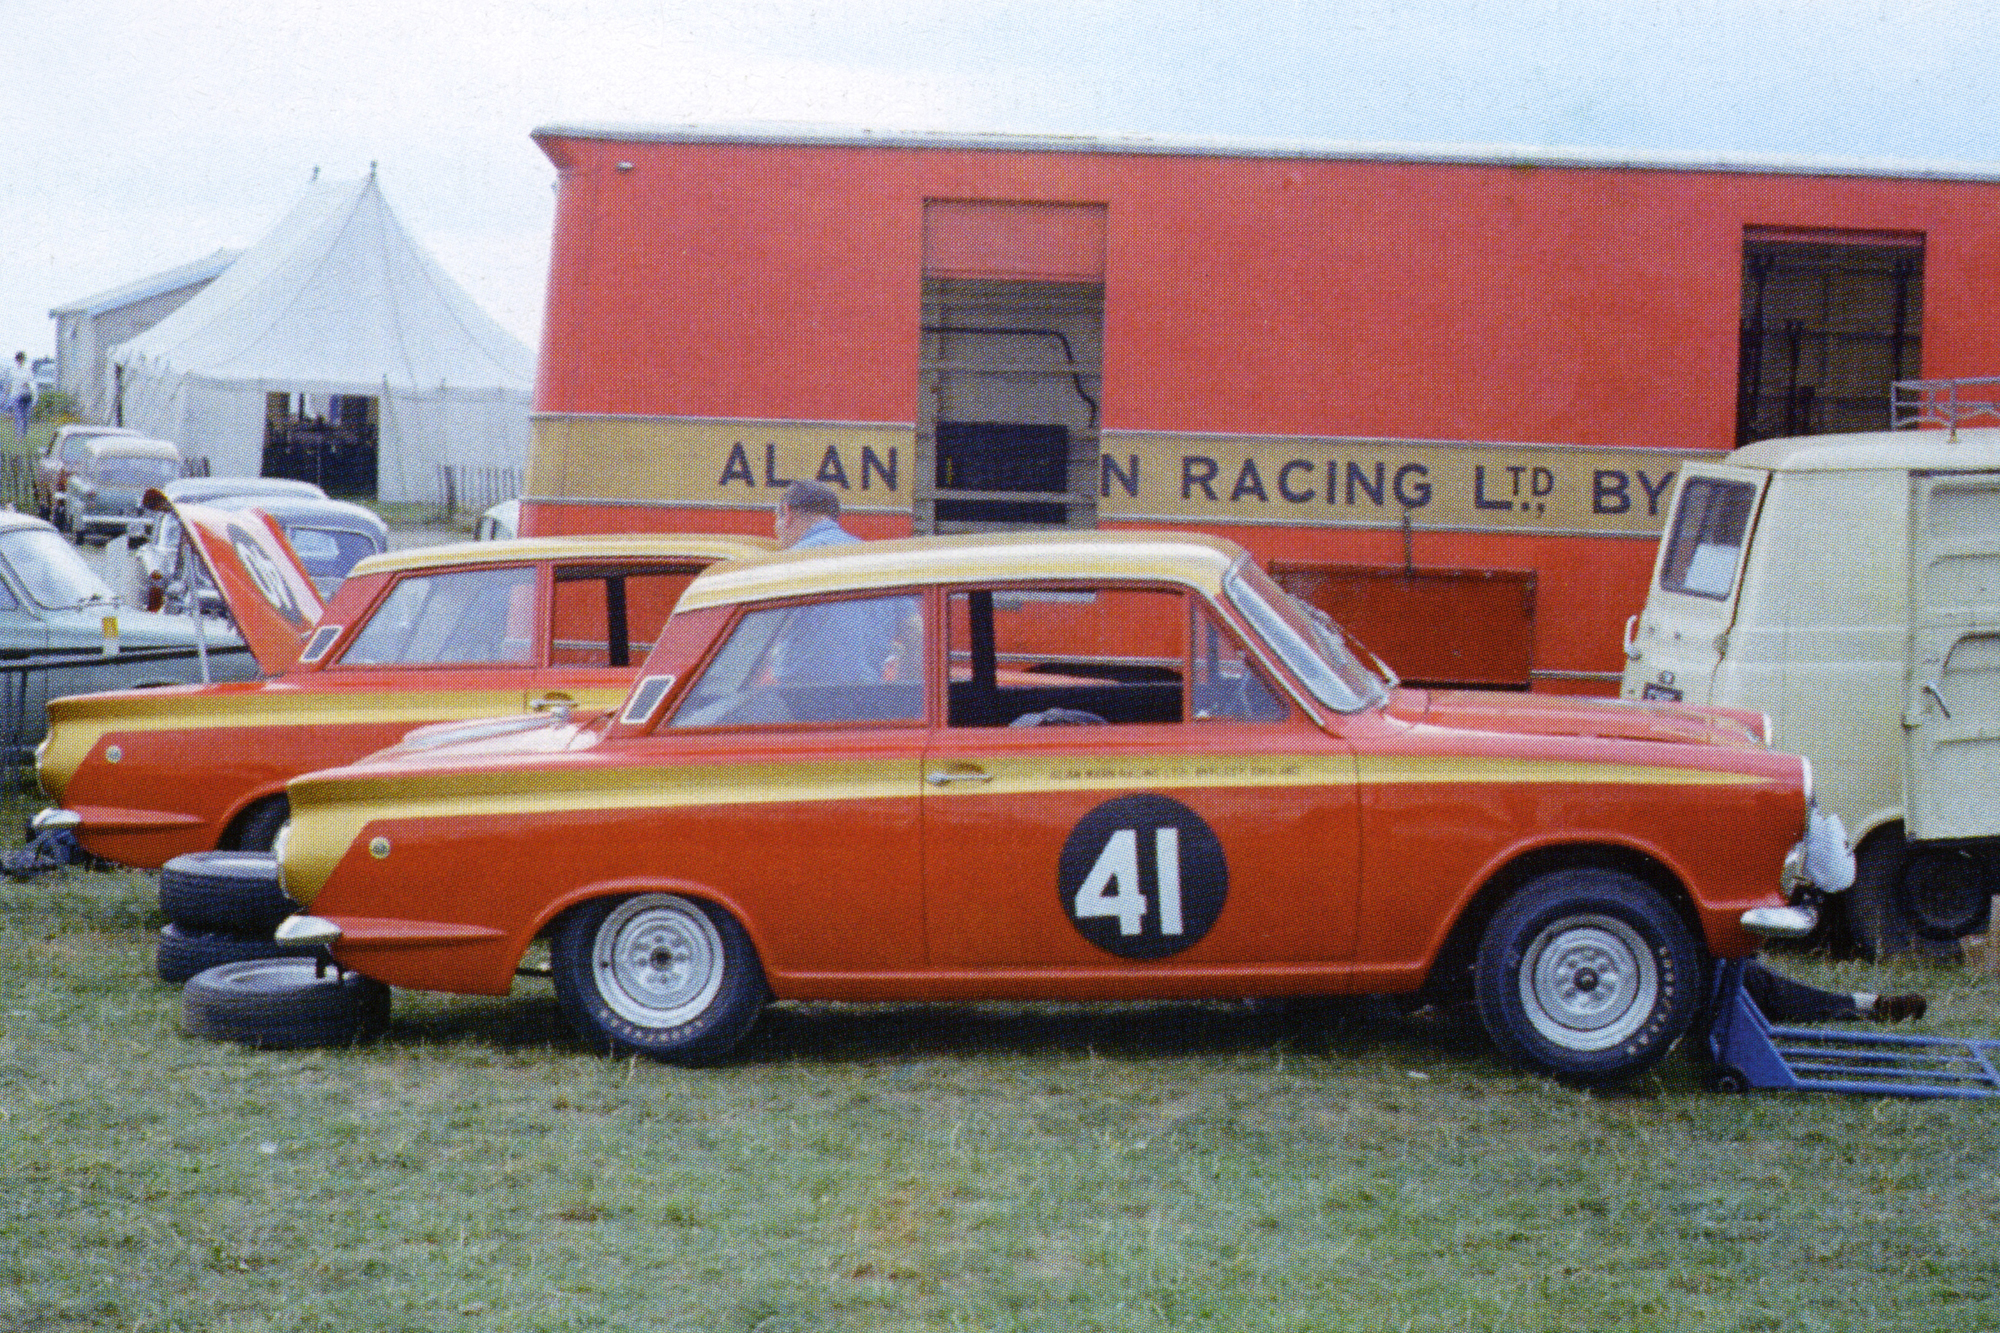 Sir John Whitmore won the European Touring Car Championship with the famous red and gold Cortina.